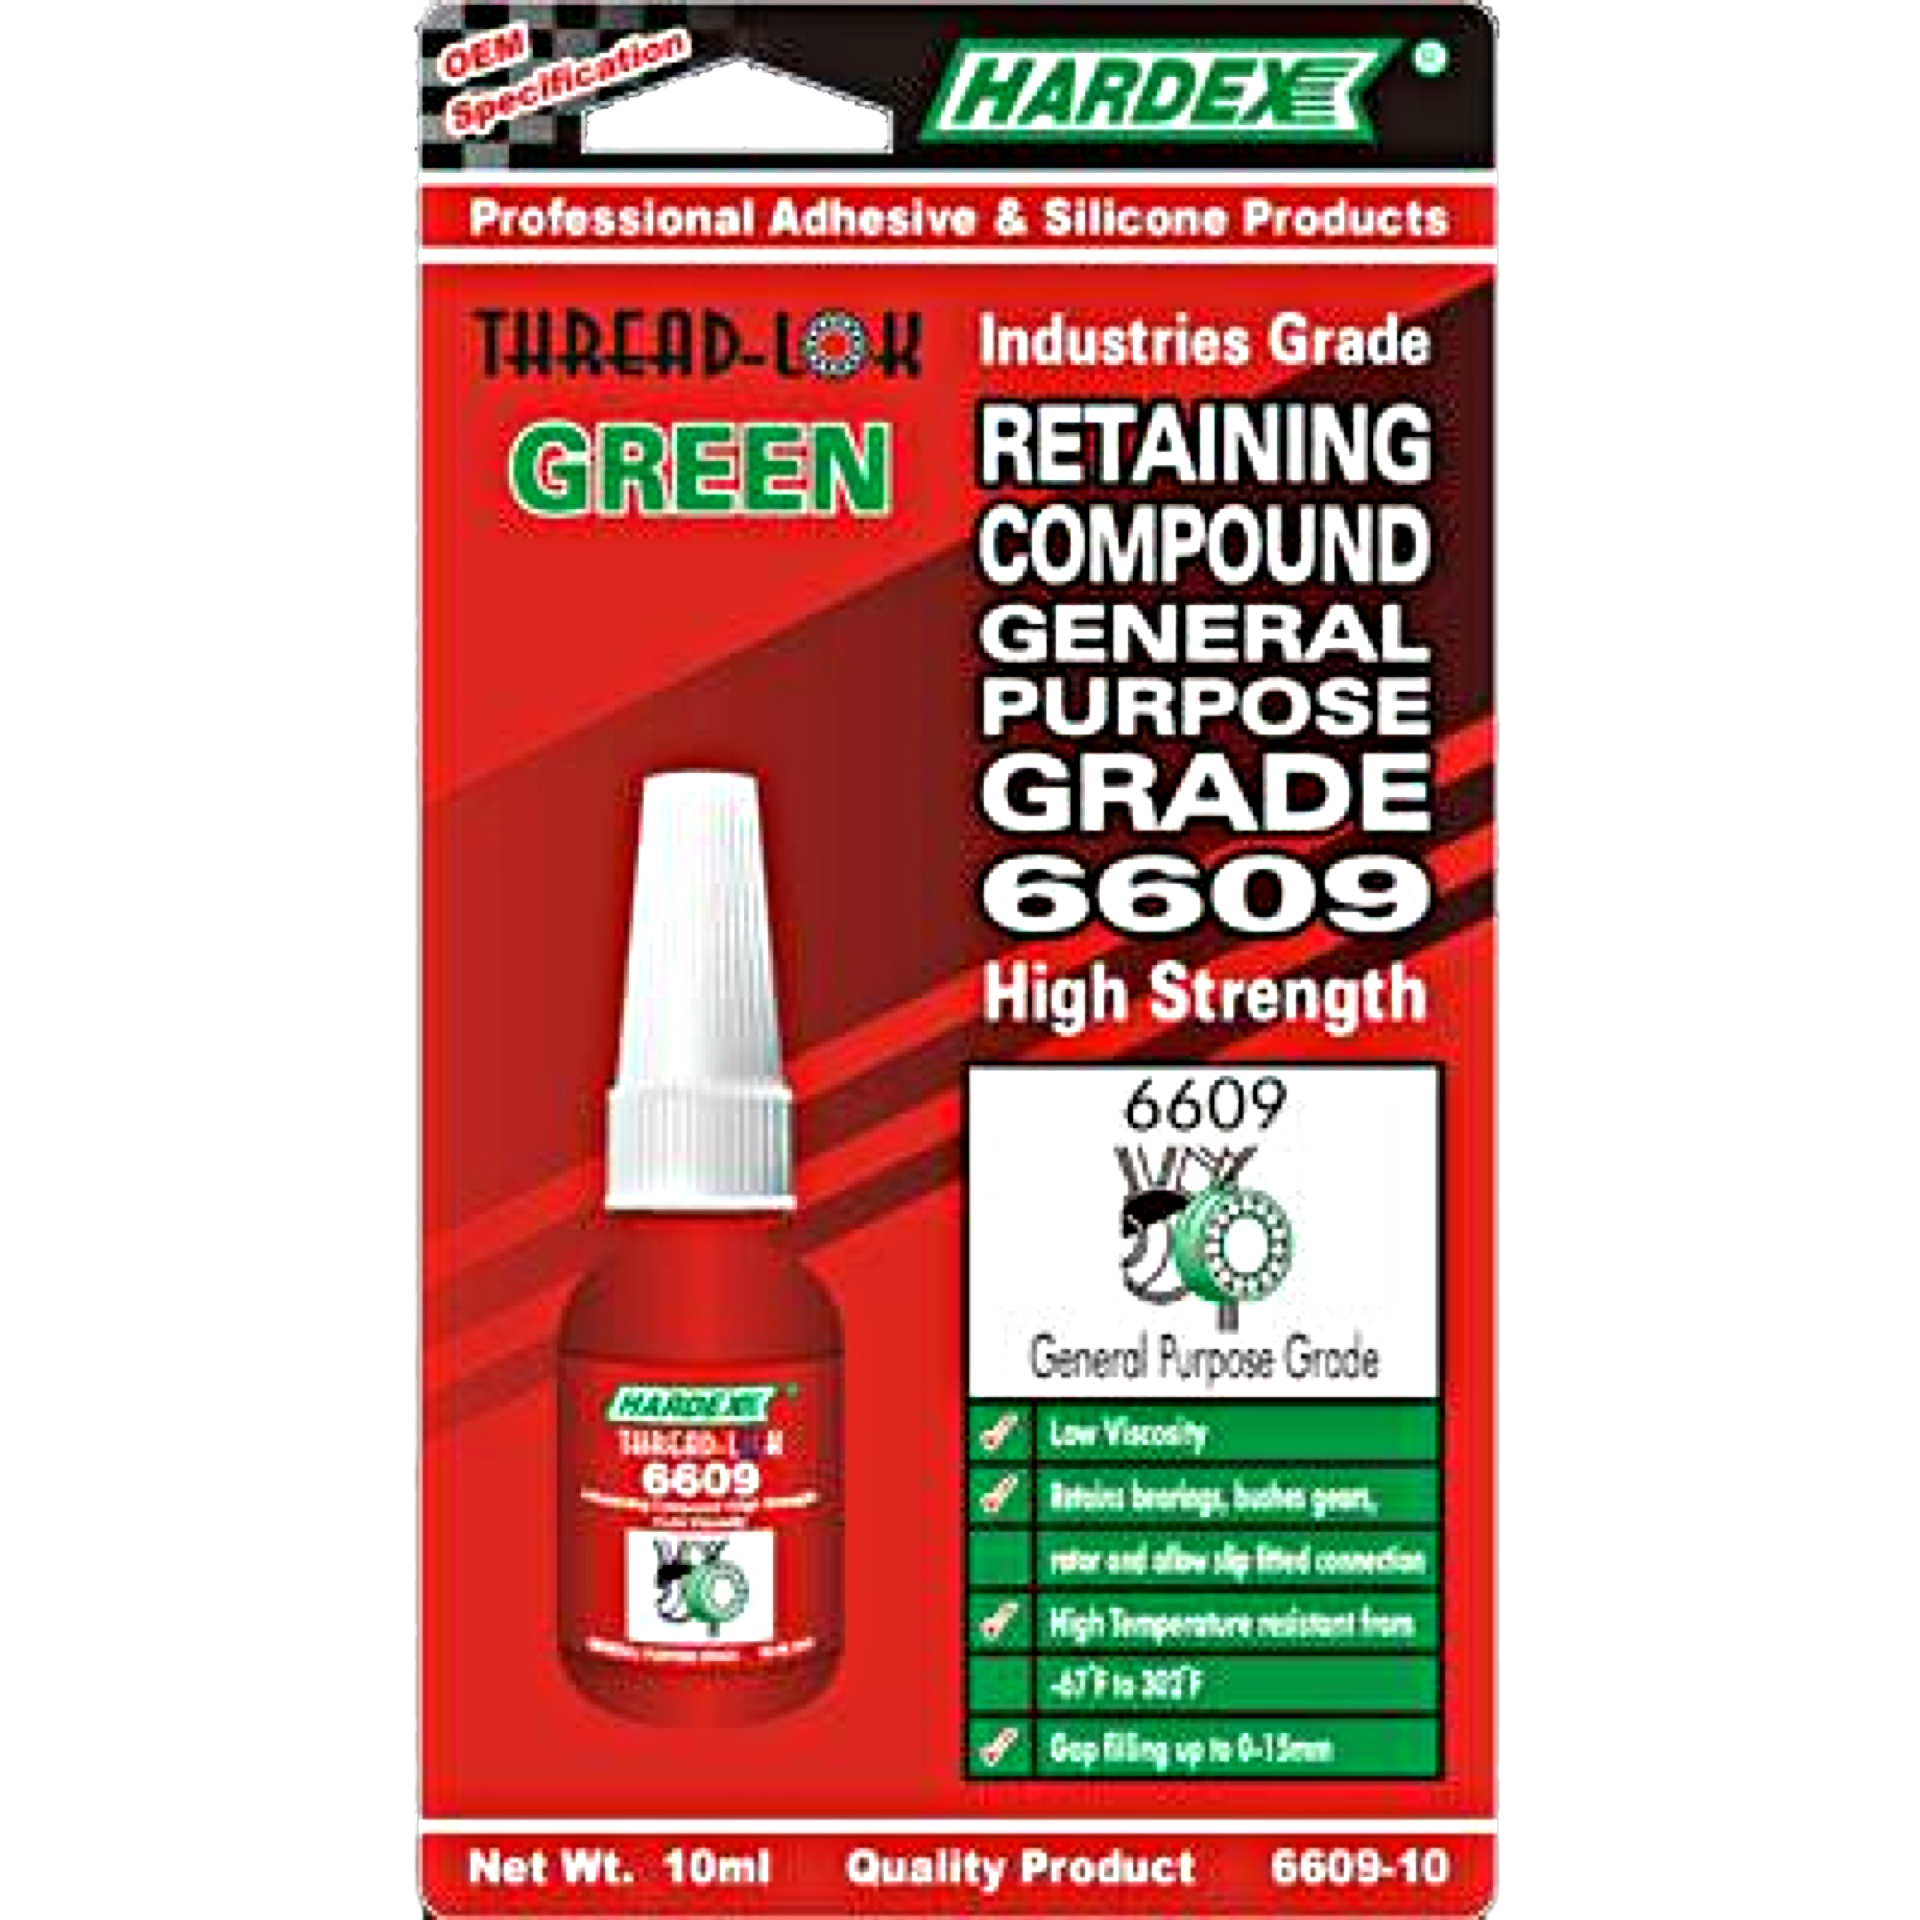 Hardex Retaining Compound General Purpose 6609.JPG